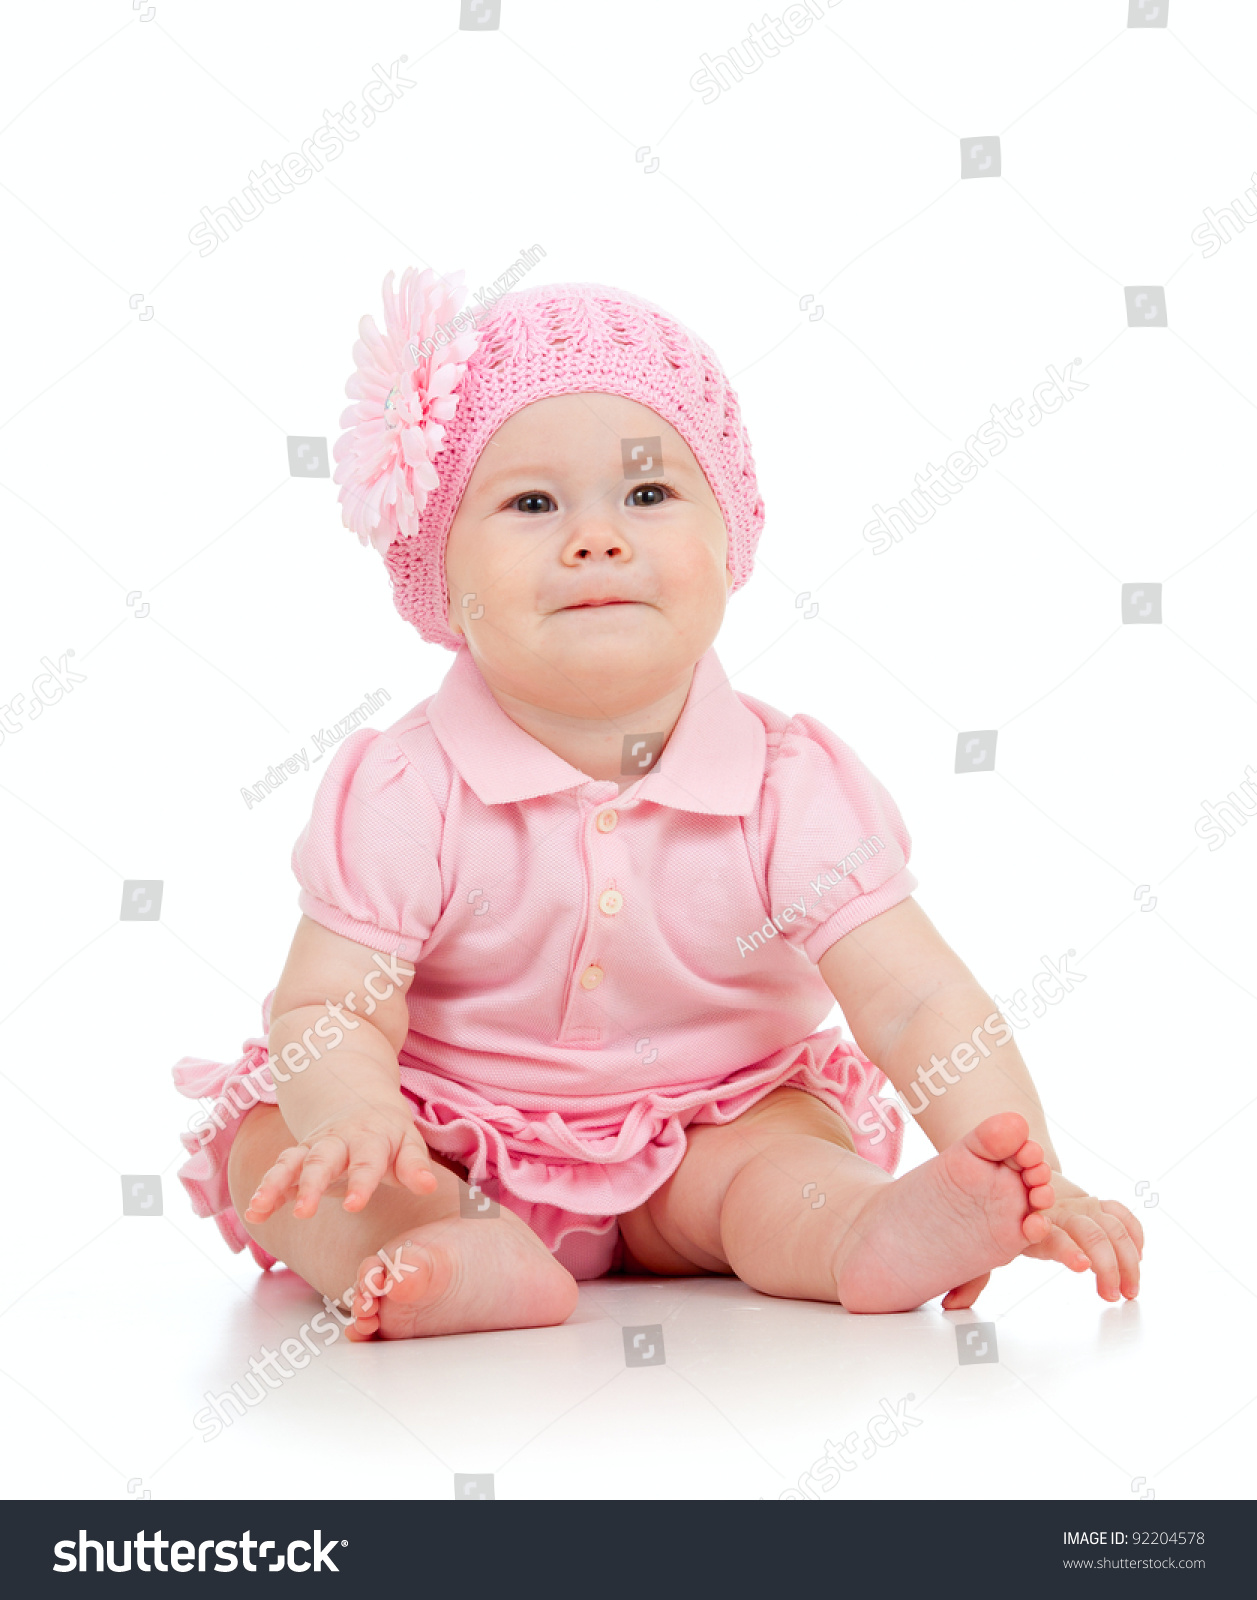 little cute babygirl pink dress isolated stock photo (100% legal